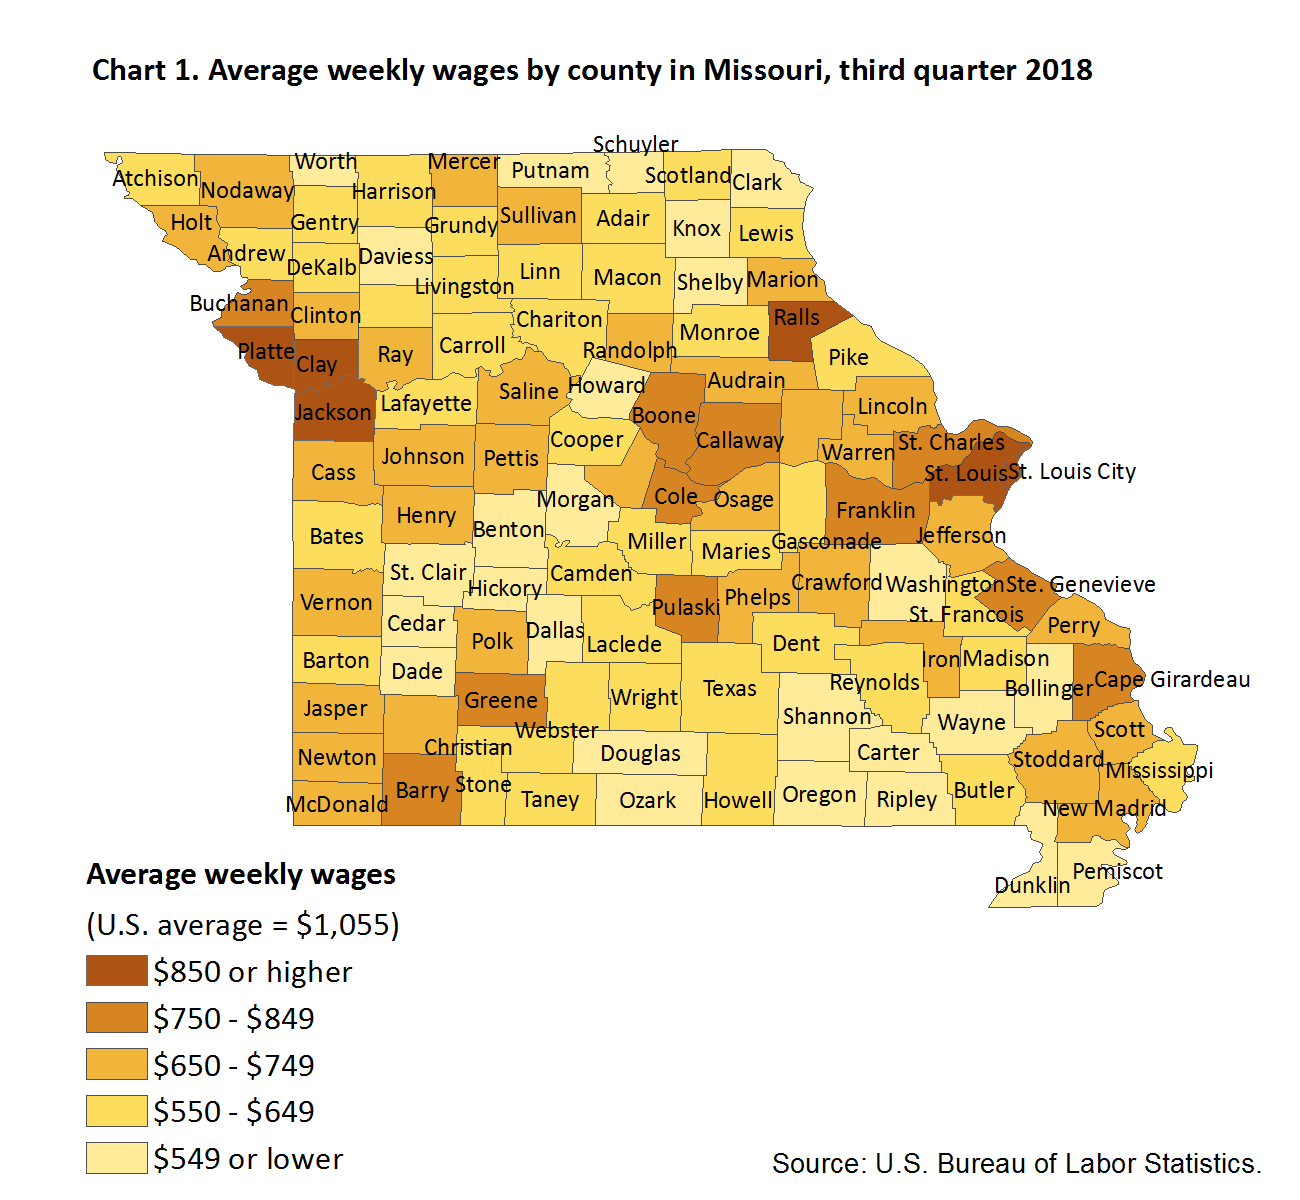 County Employment and Wages in Missouri – Third Quarter 2018